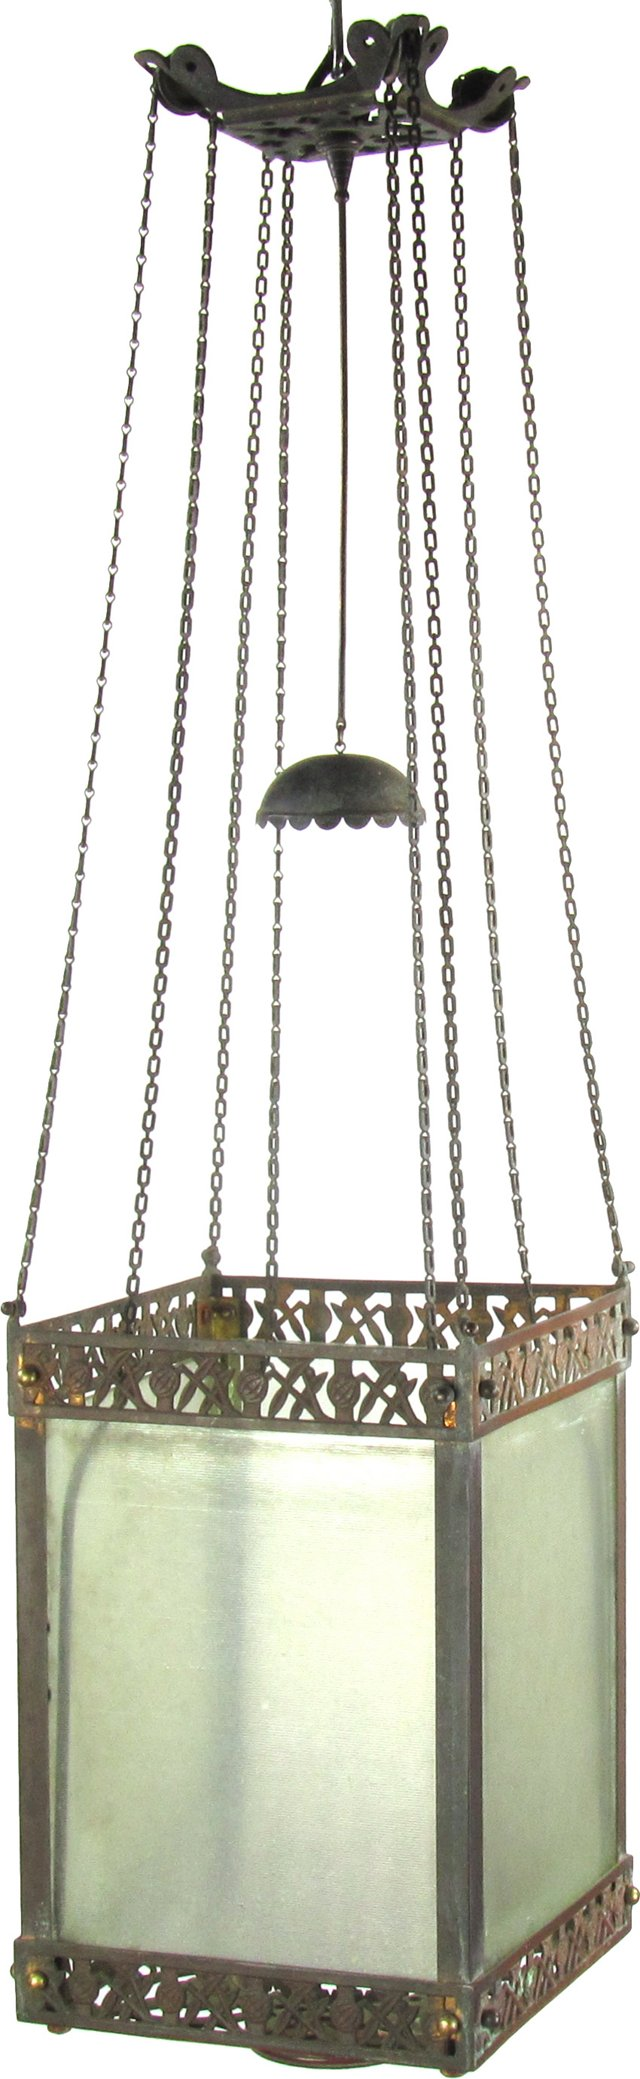 19th-C. Lantern w/ Chain Mechanism